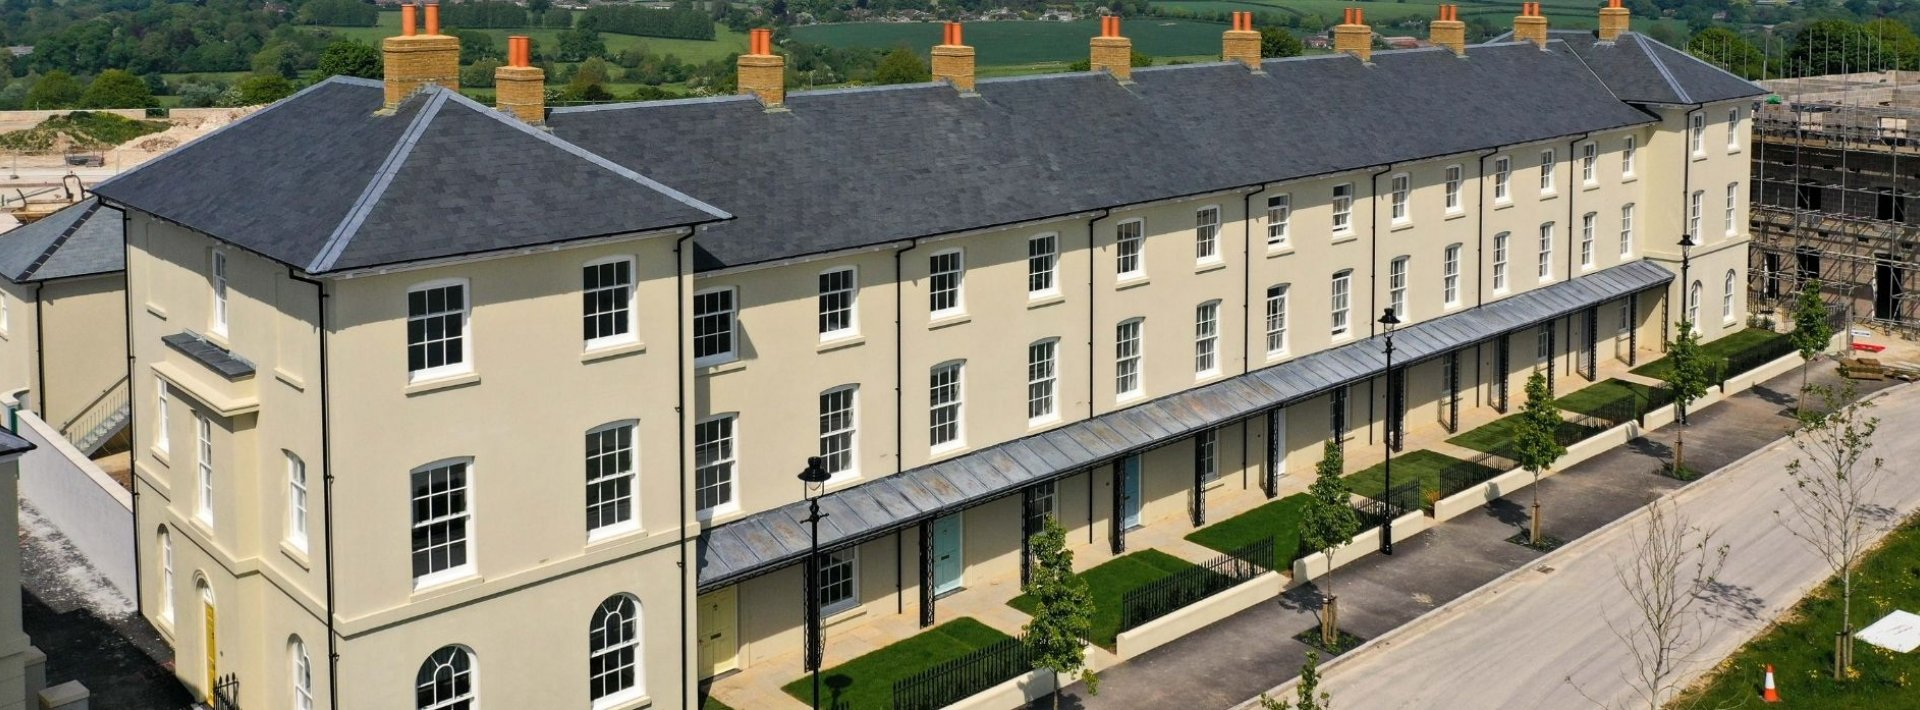 New Show Home In Poundbury